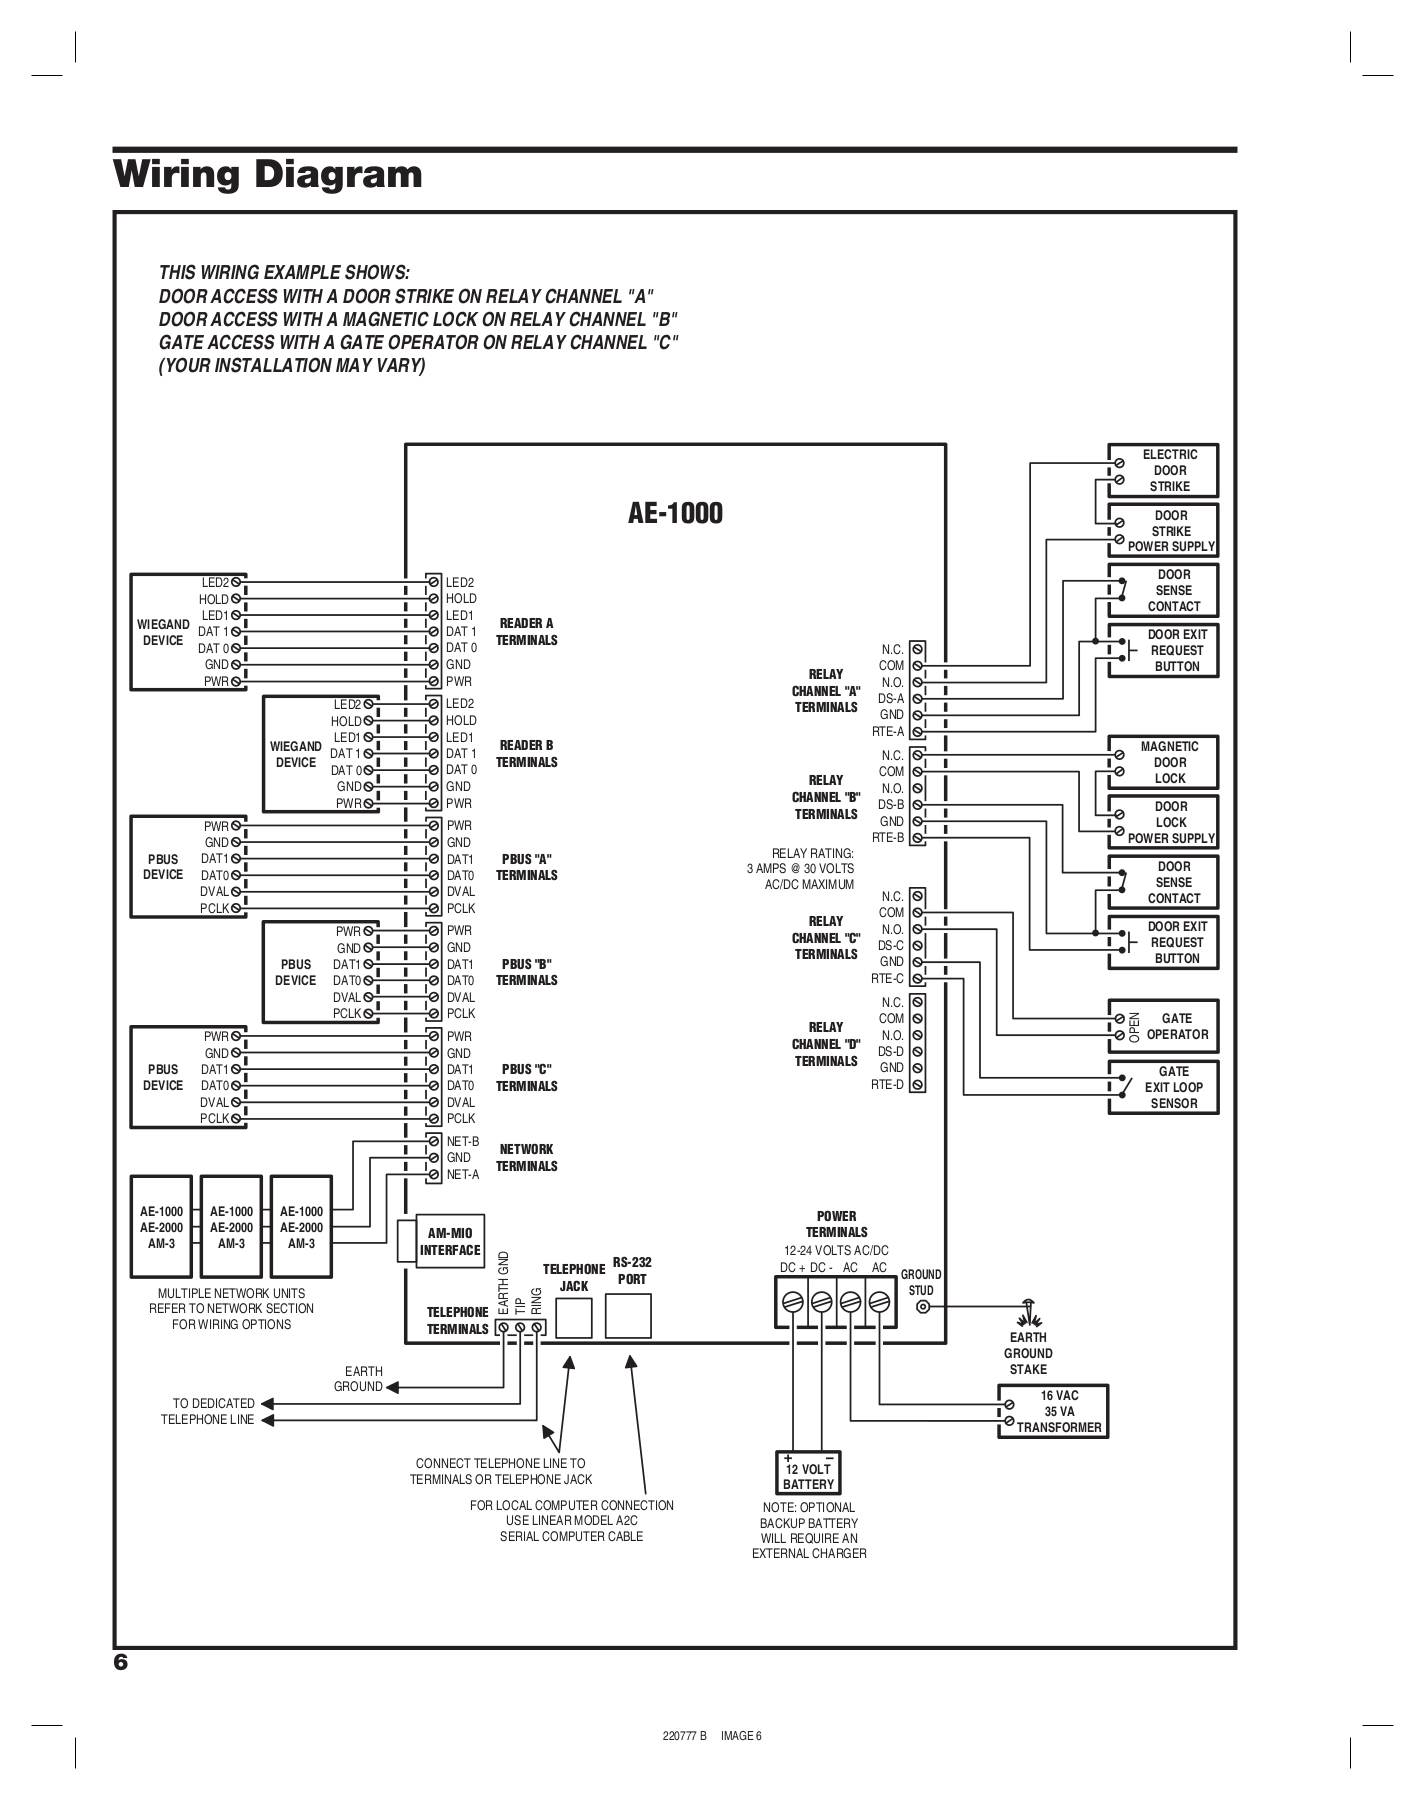 Ae Wiring Diagram Change Your Idea With Design 12 Volt Battery For Lights Linear Ae1000plus 500 Programming Suzuki Ay 50 Ae101